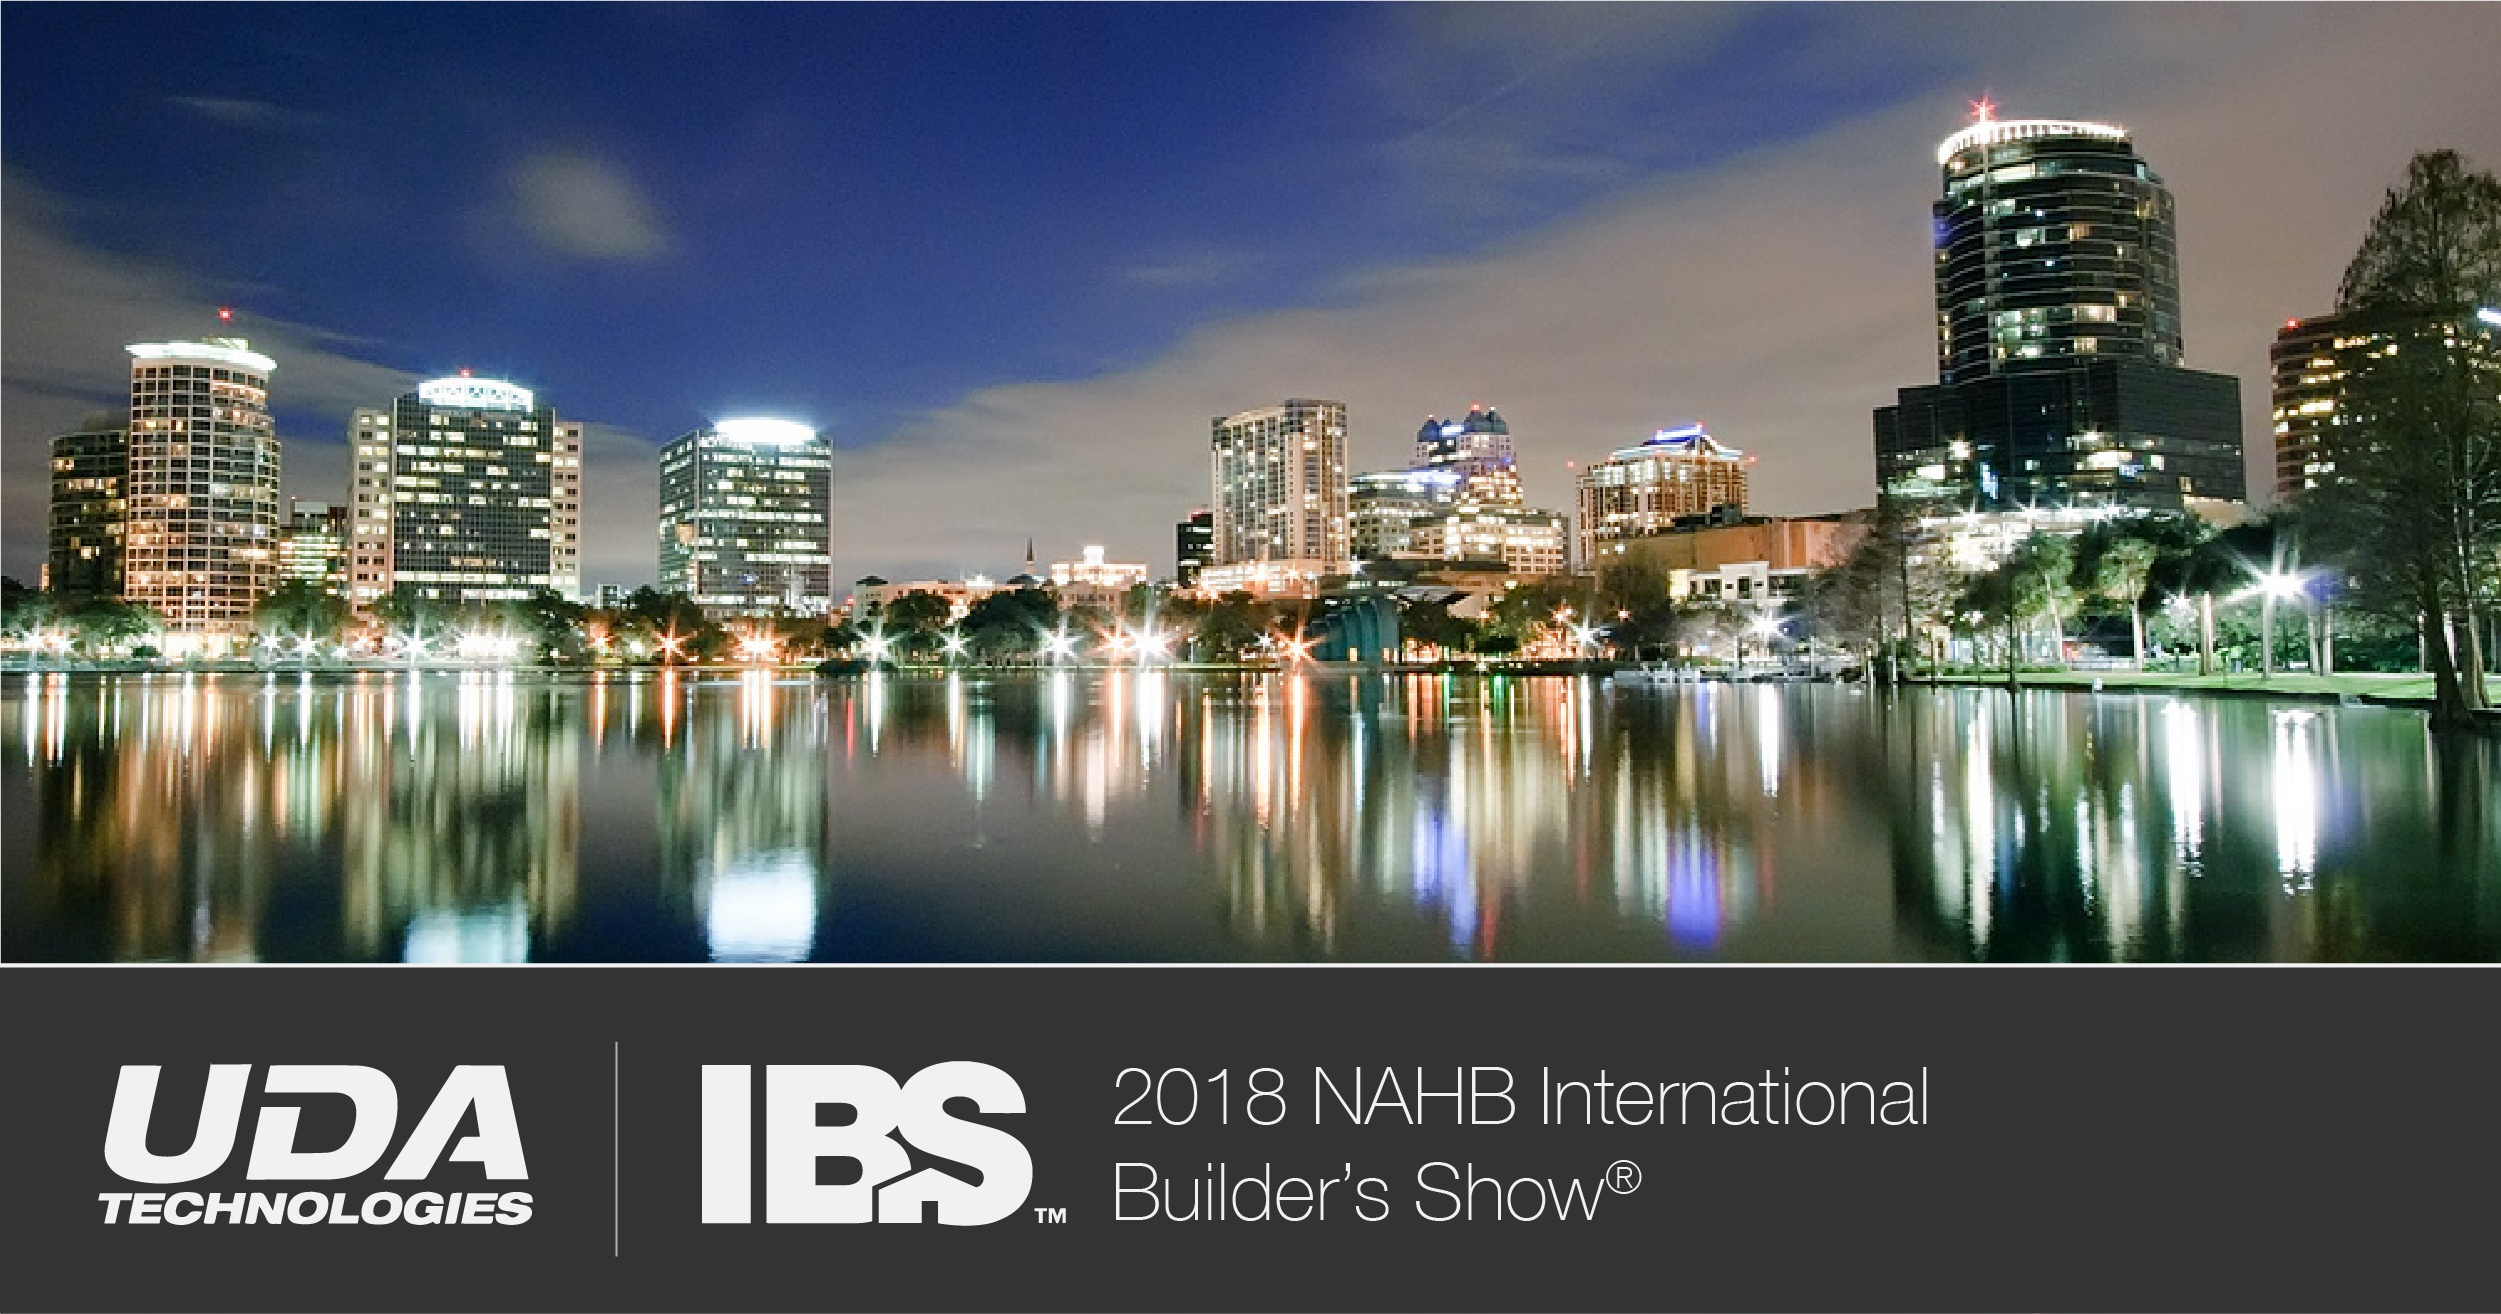 5 Reasons Why You Should Attend IBS 2018